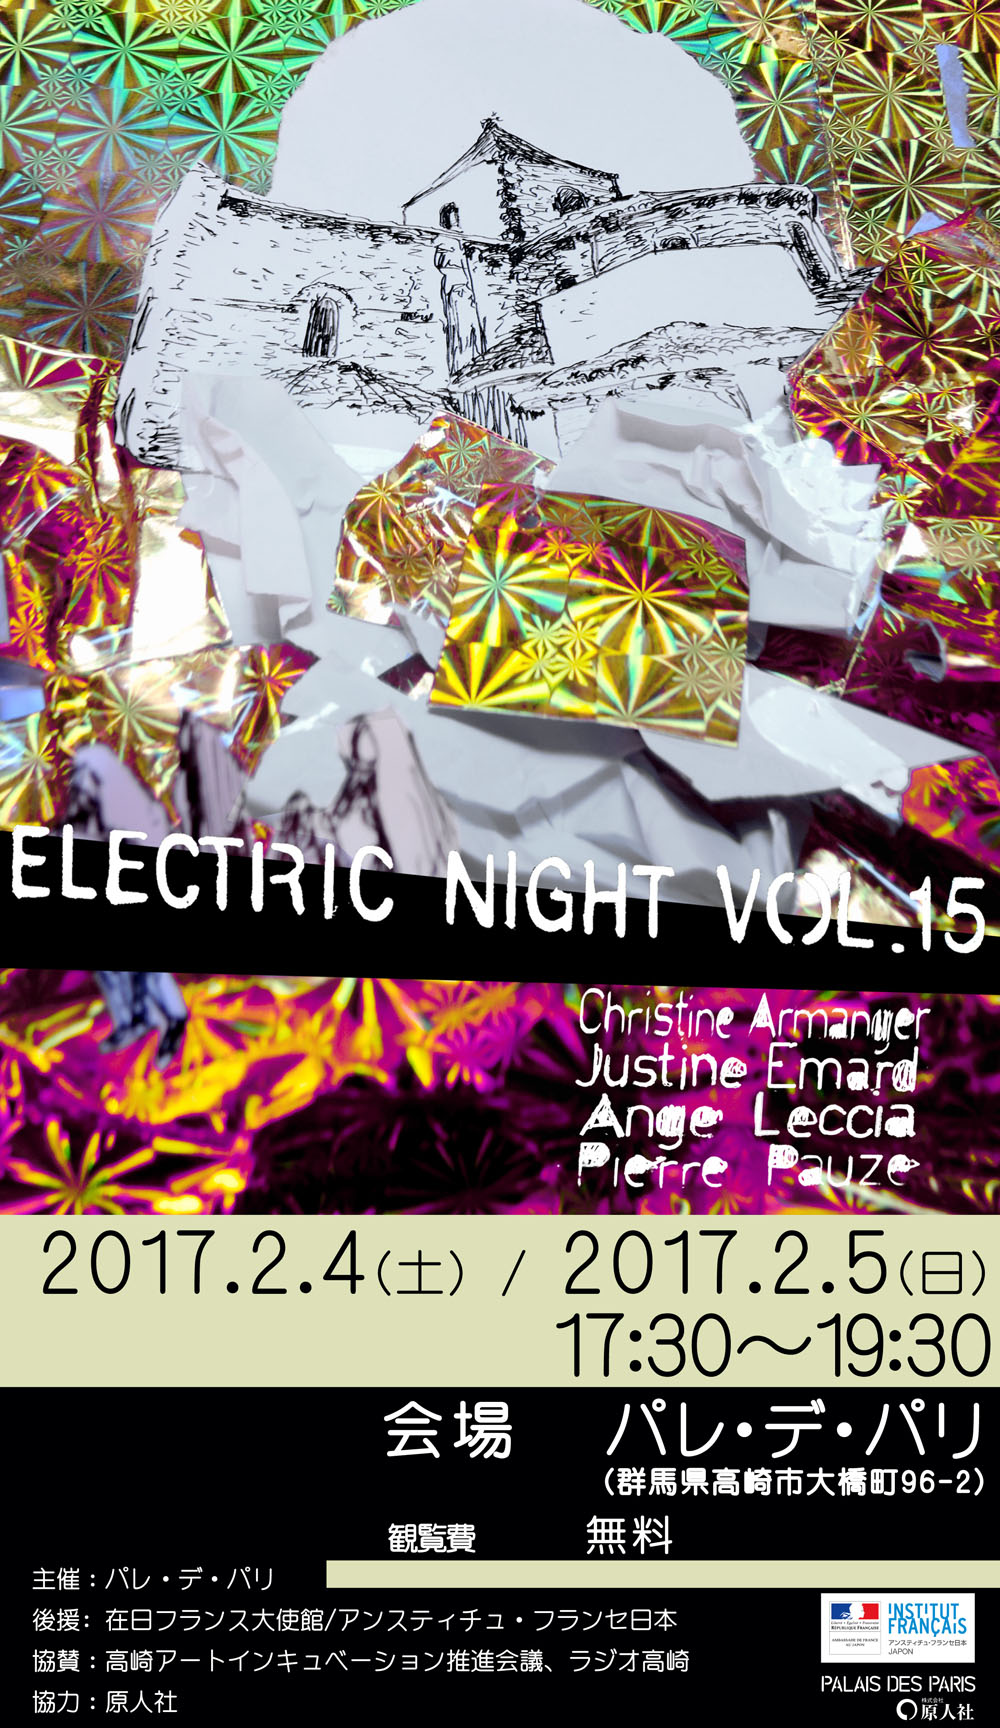 affiche-electric-night-vol15